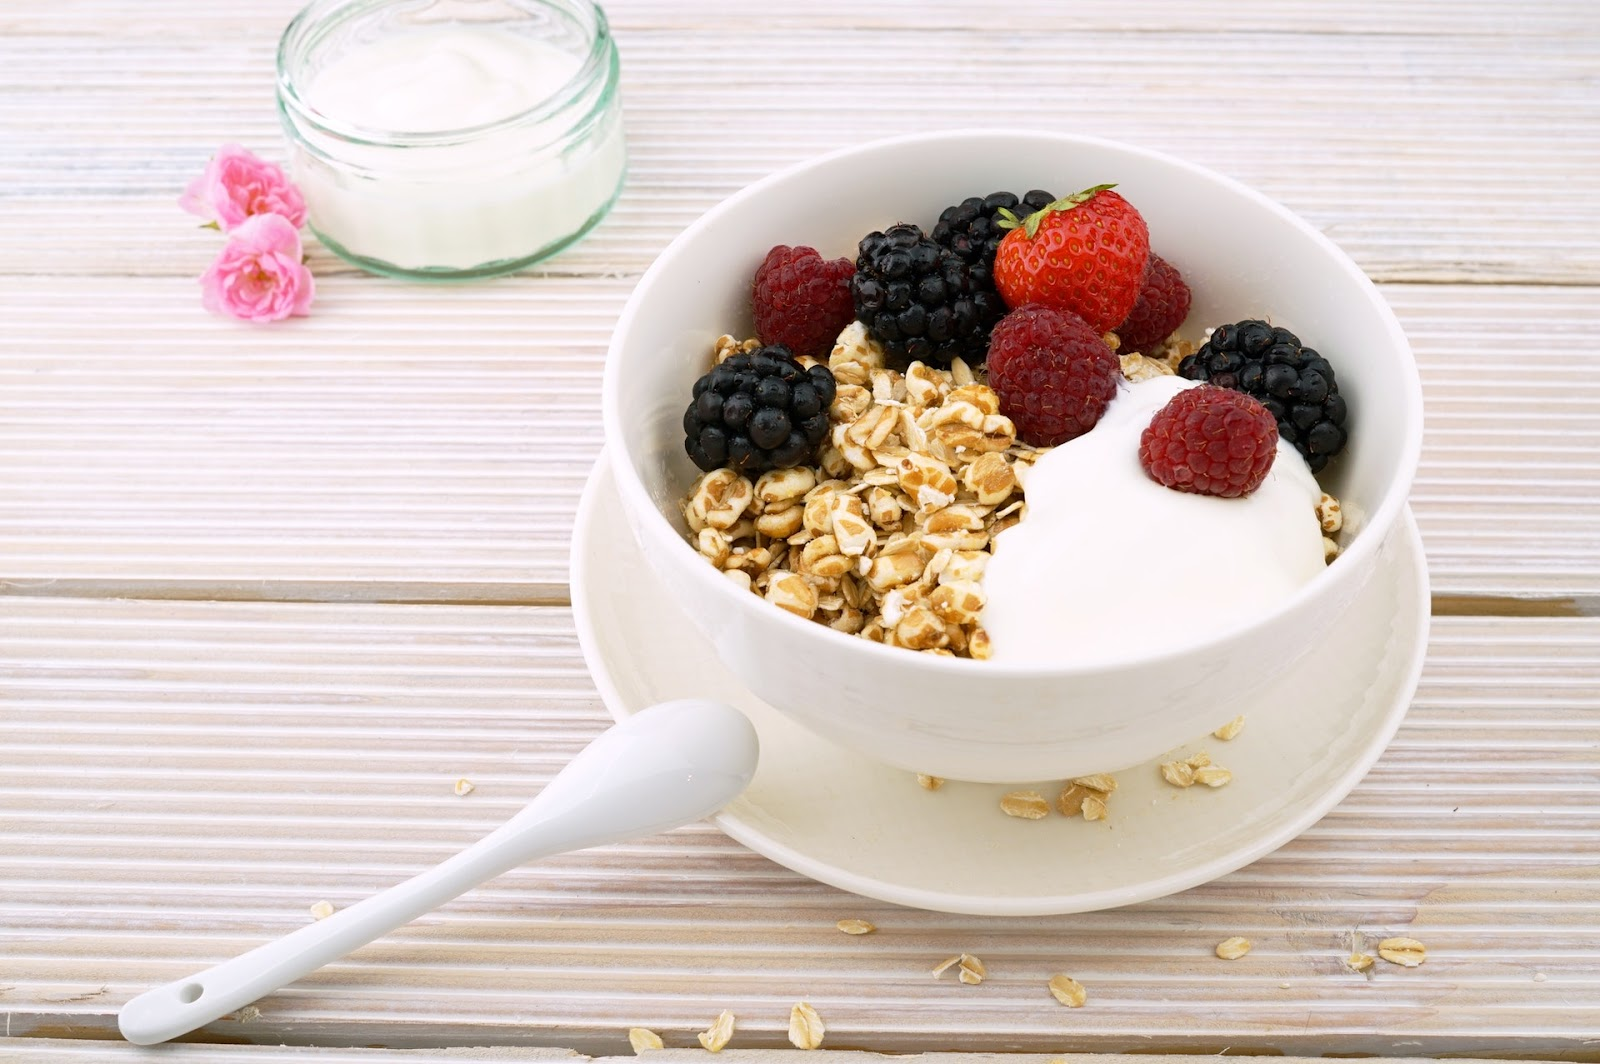 Yoghurt and fresh berries in a bowl with a spoon.